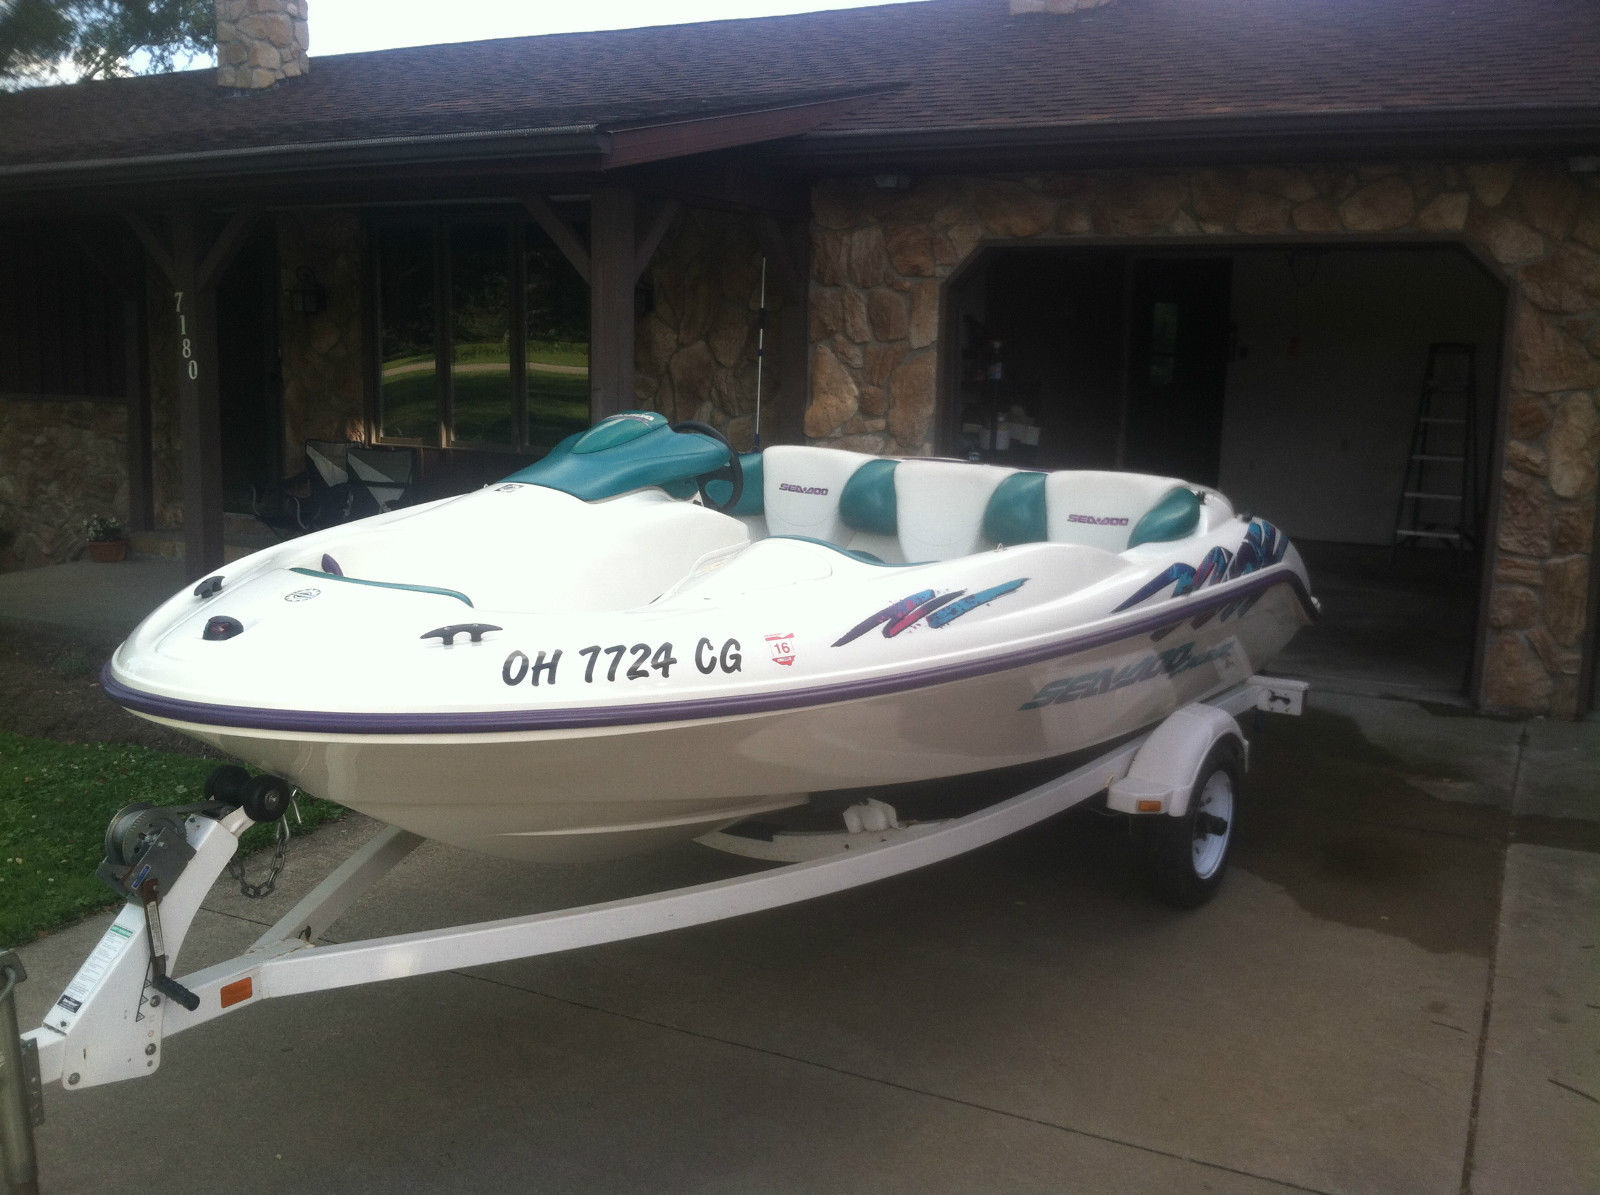 1997 sea doo Challenger wont Rev